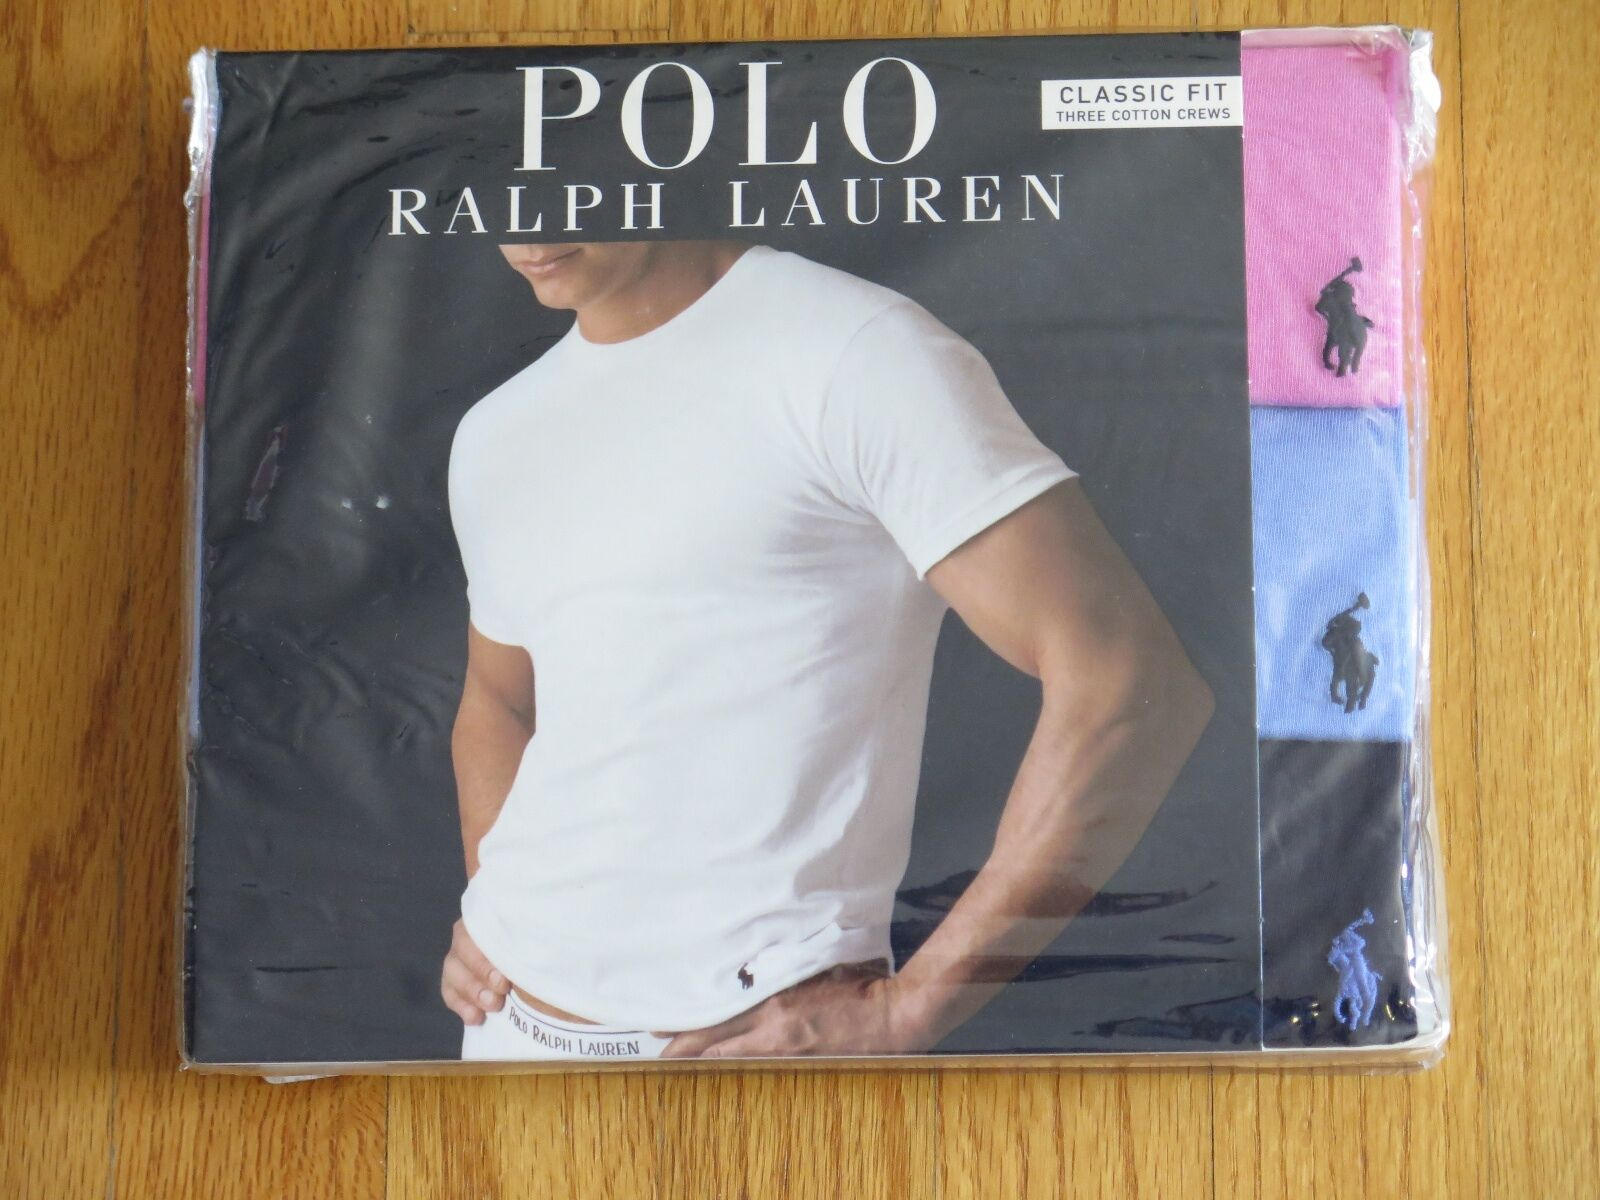 Polo Ralph Lauren Set of 3 Classic Fit Cotton Crew Assorted T-Shirts Size  Small